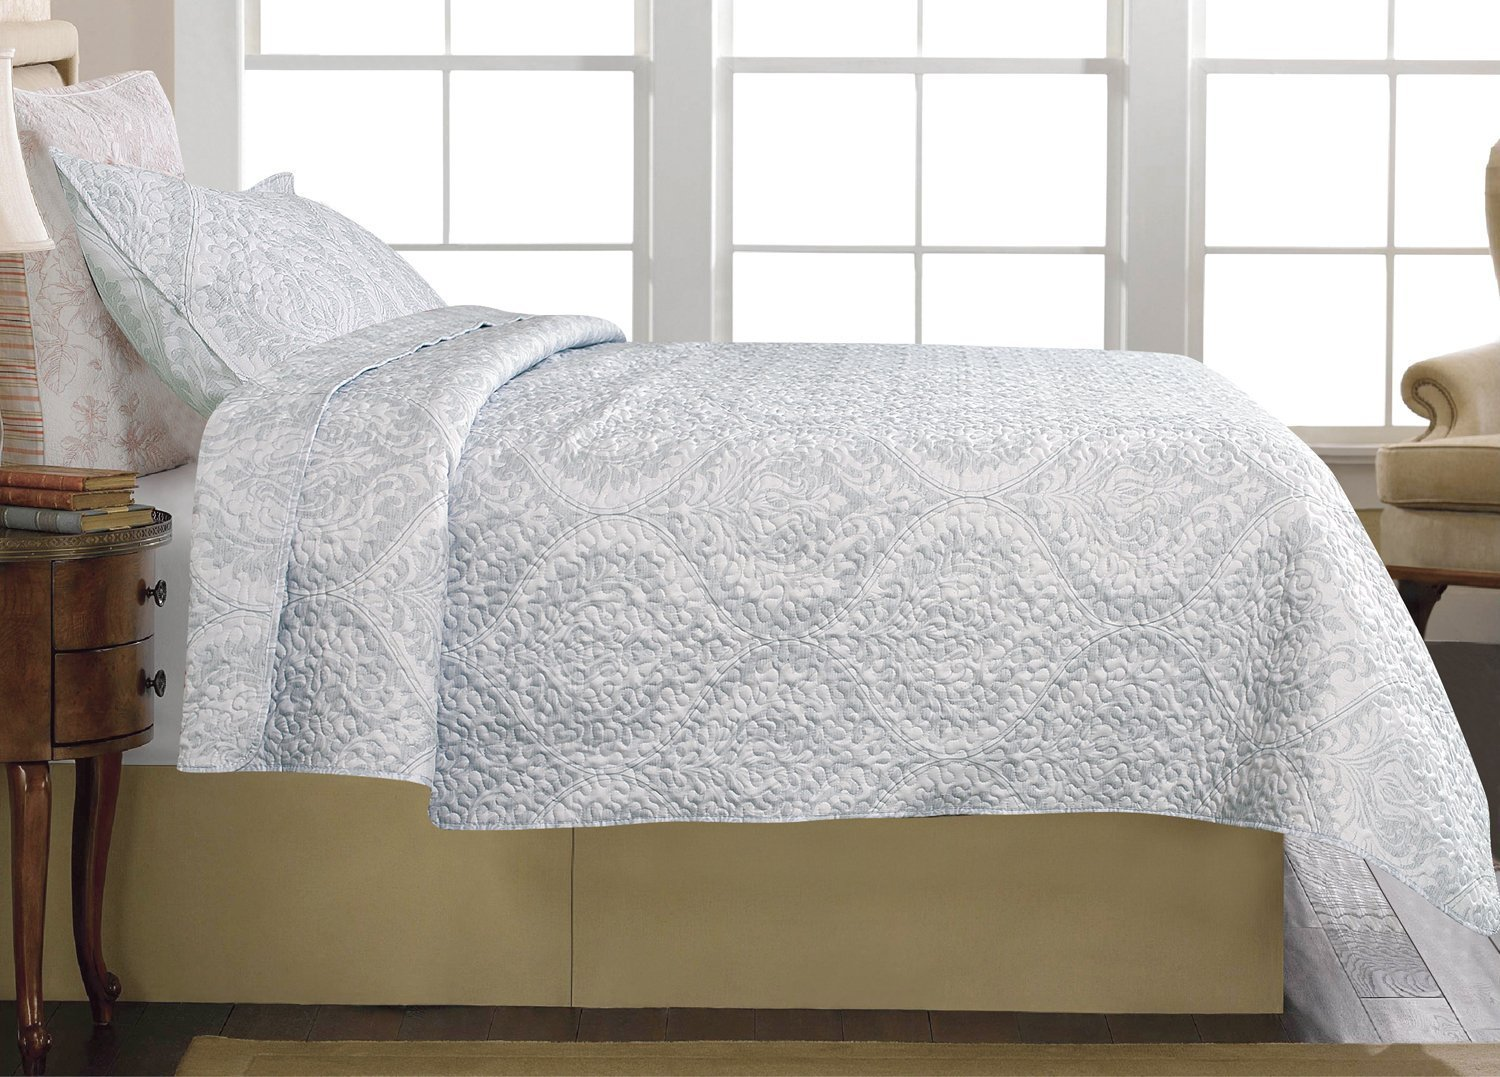 colour cover col natural living lace provincial pure with antique quilt softened gray stonewashed white duvet bedding linen